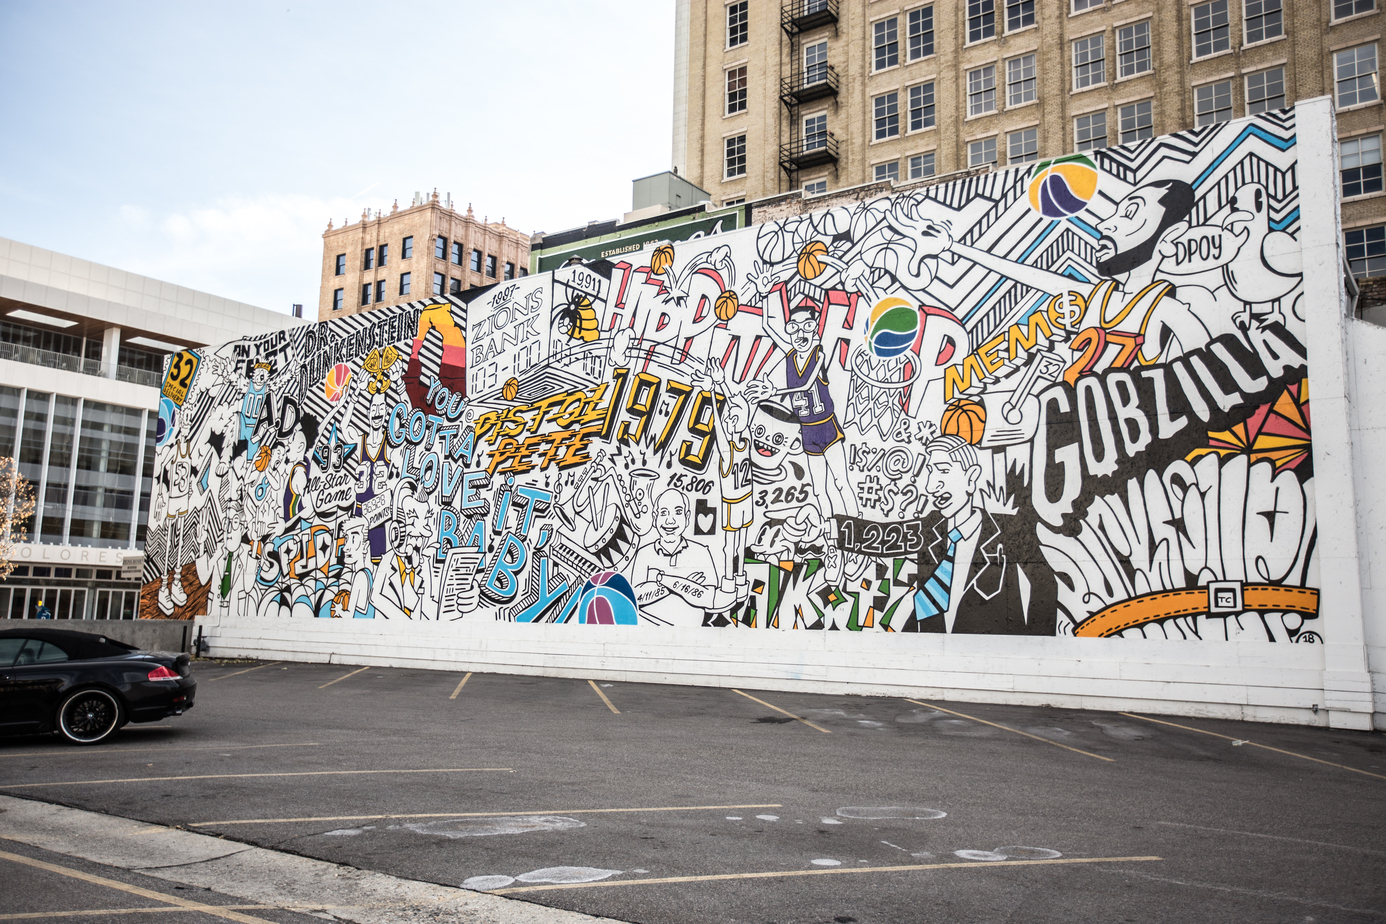 Basketball mural in Downtown Salt Lake City, Utah